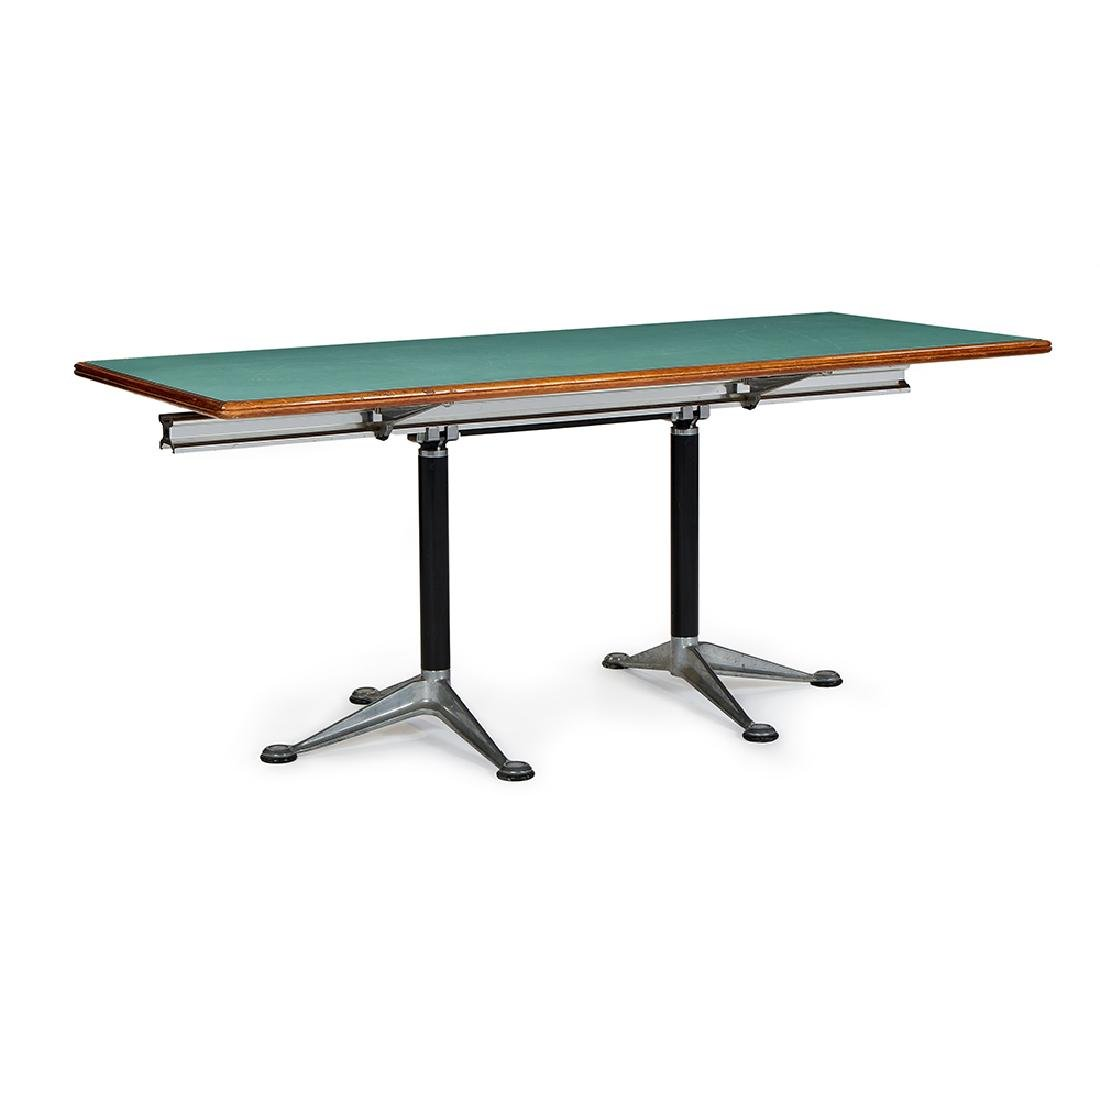 Bruce Burdick Herman Miller Burdick Group table